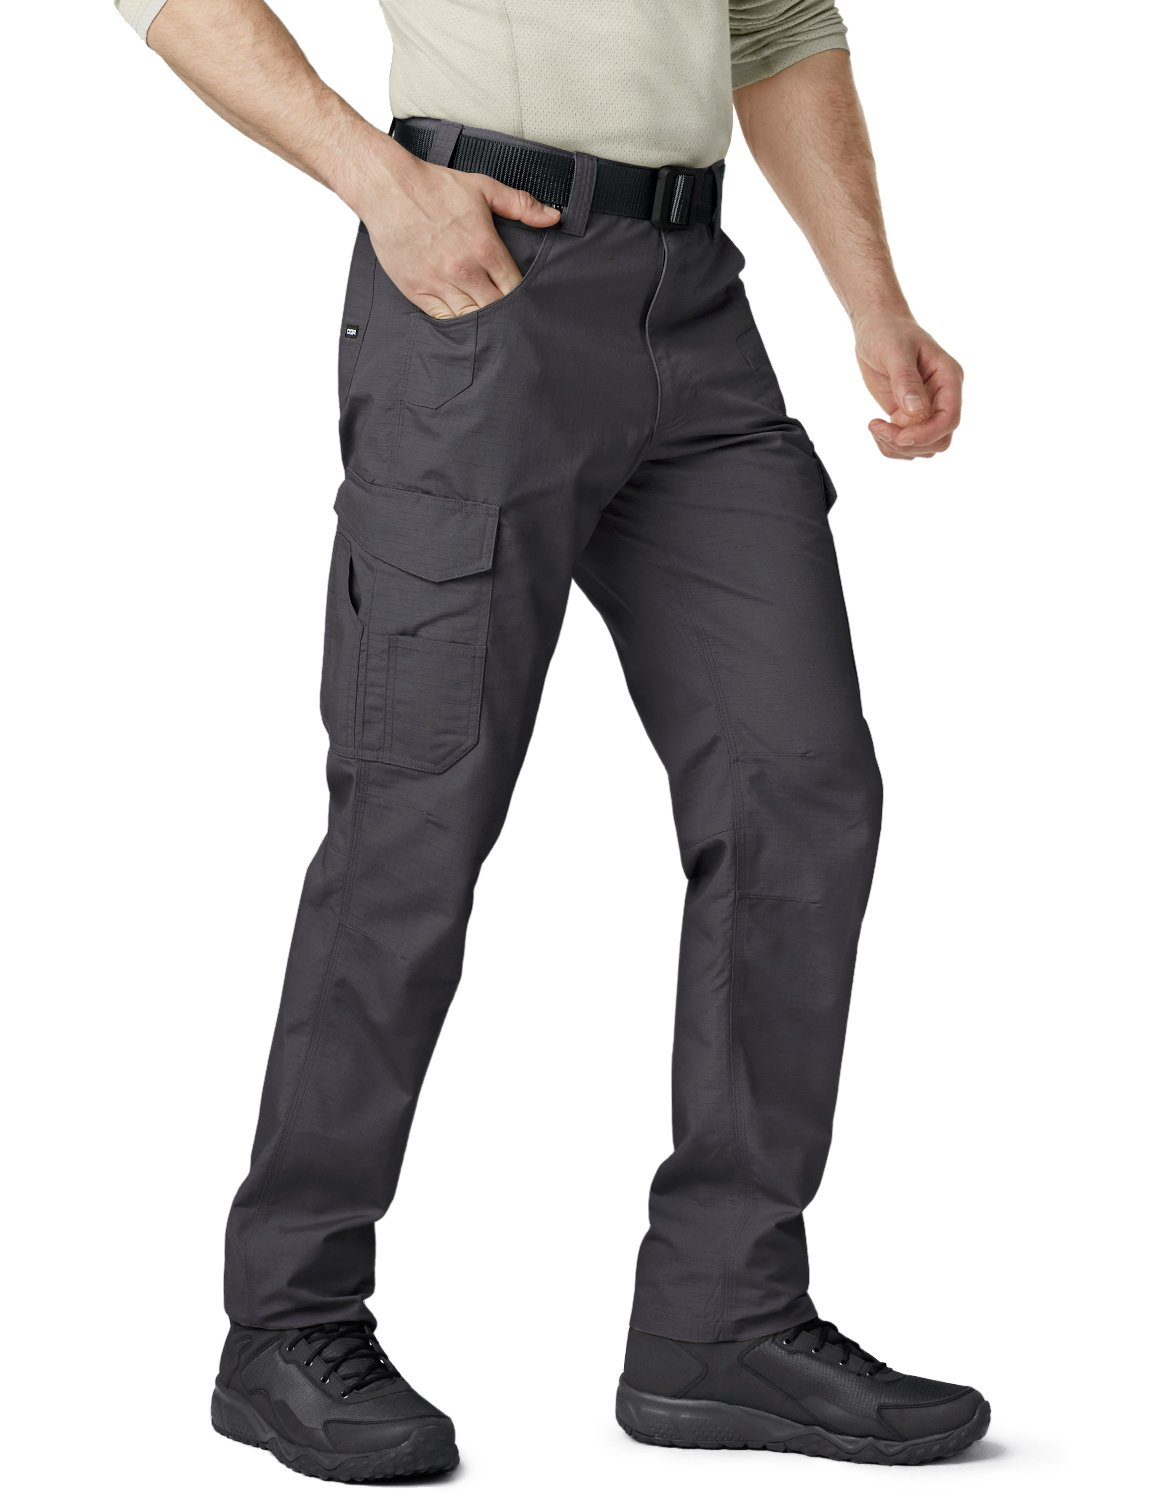 CQR CQ-TWP302-CHC_32W/34L Men's Operator Rip-Stop Tactical Work Utility Pants EDC TWP302